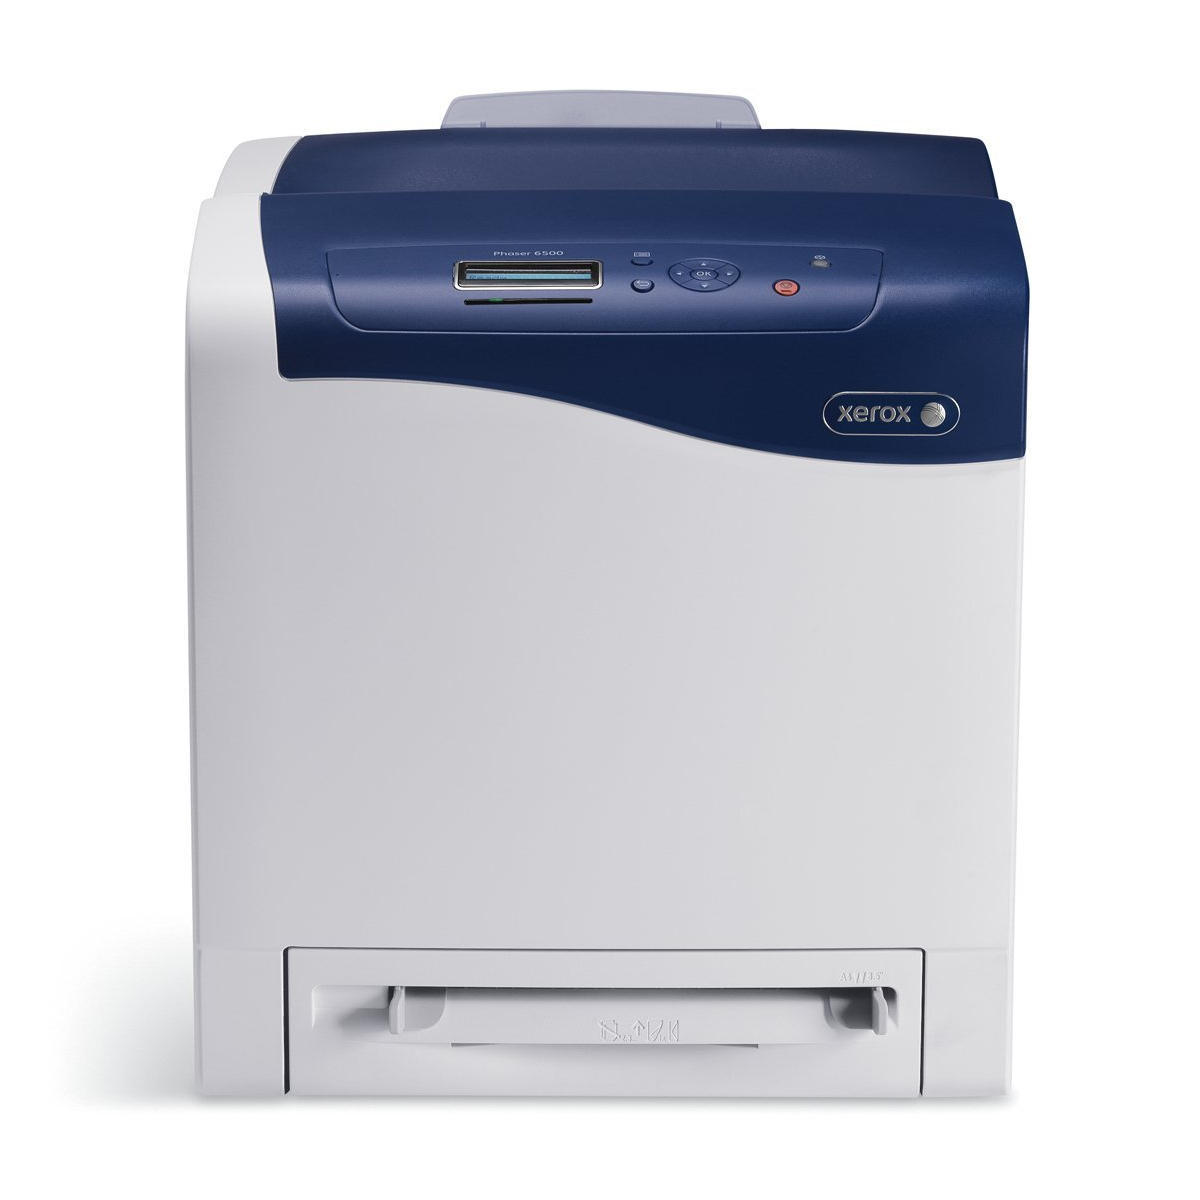 Xerox Phaser 6500/DN Single Function Colour Laser Printer (Phaser 6500)